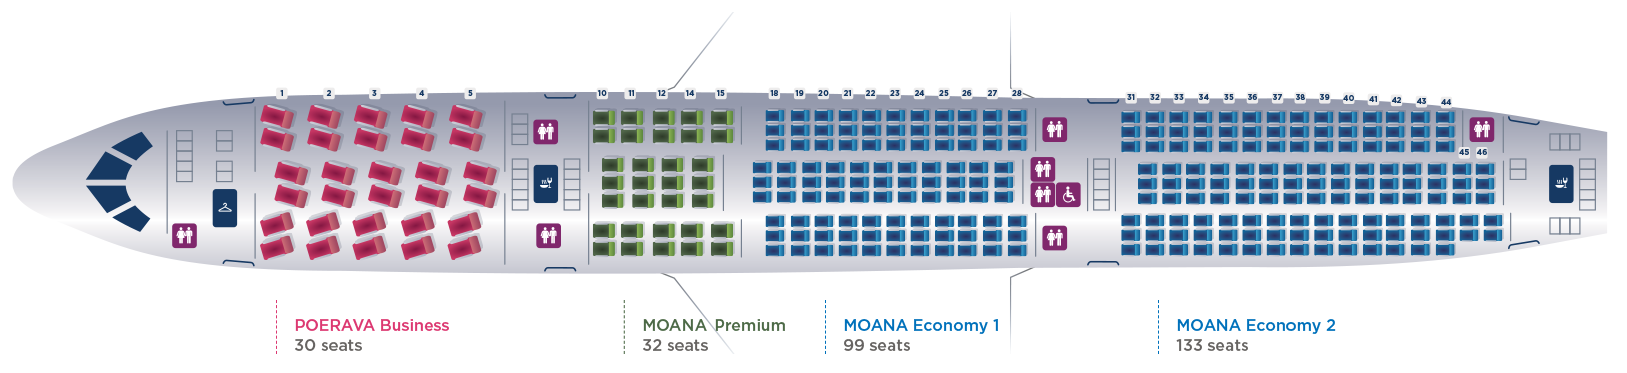 Tahitian Dreamliner Seating Map